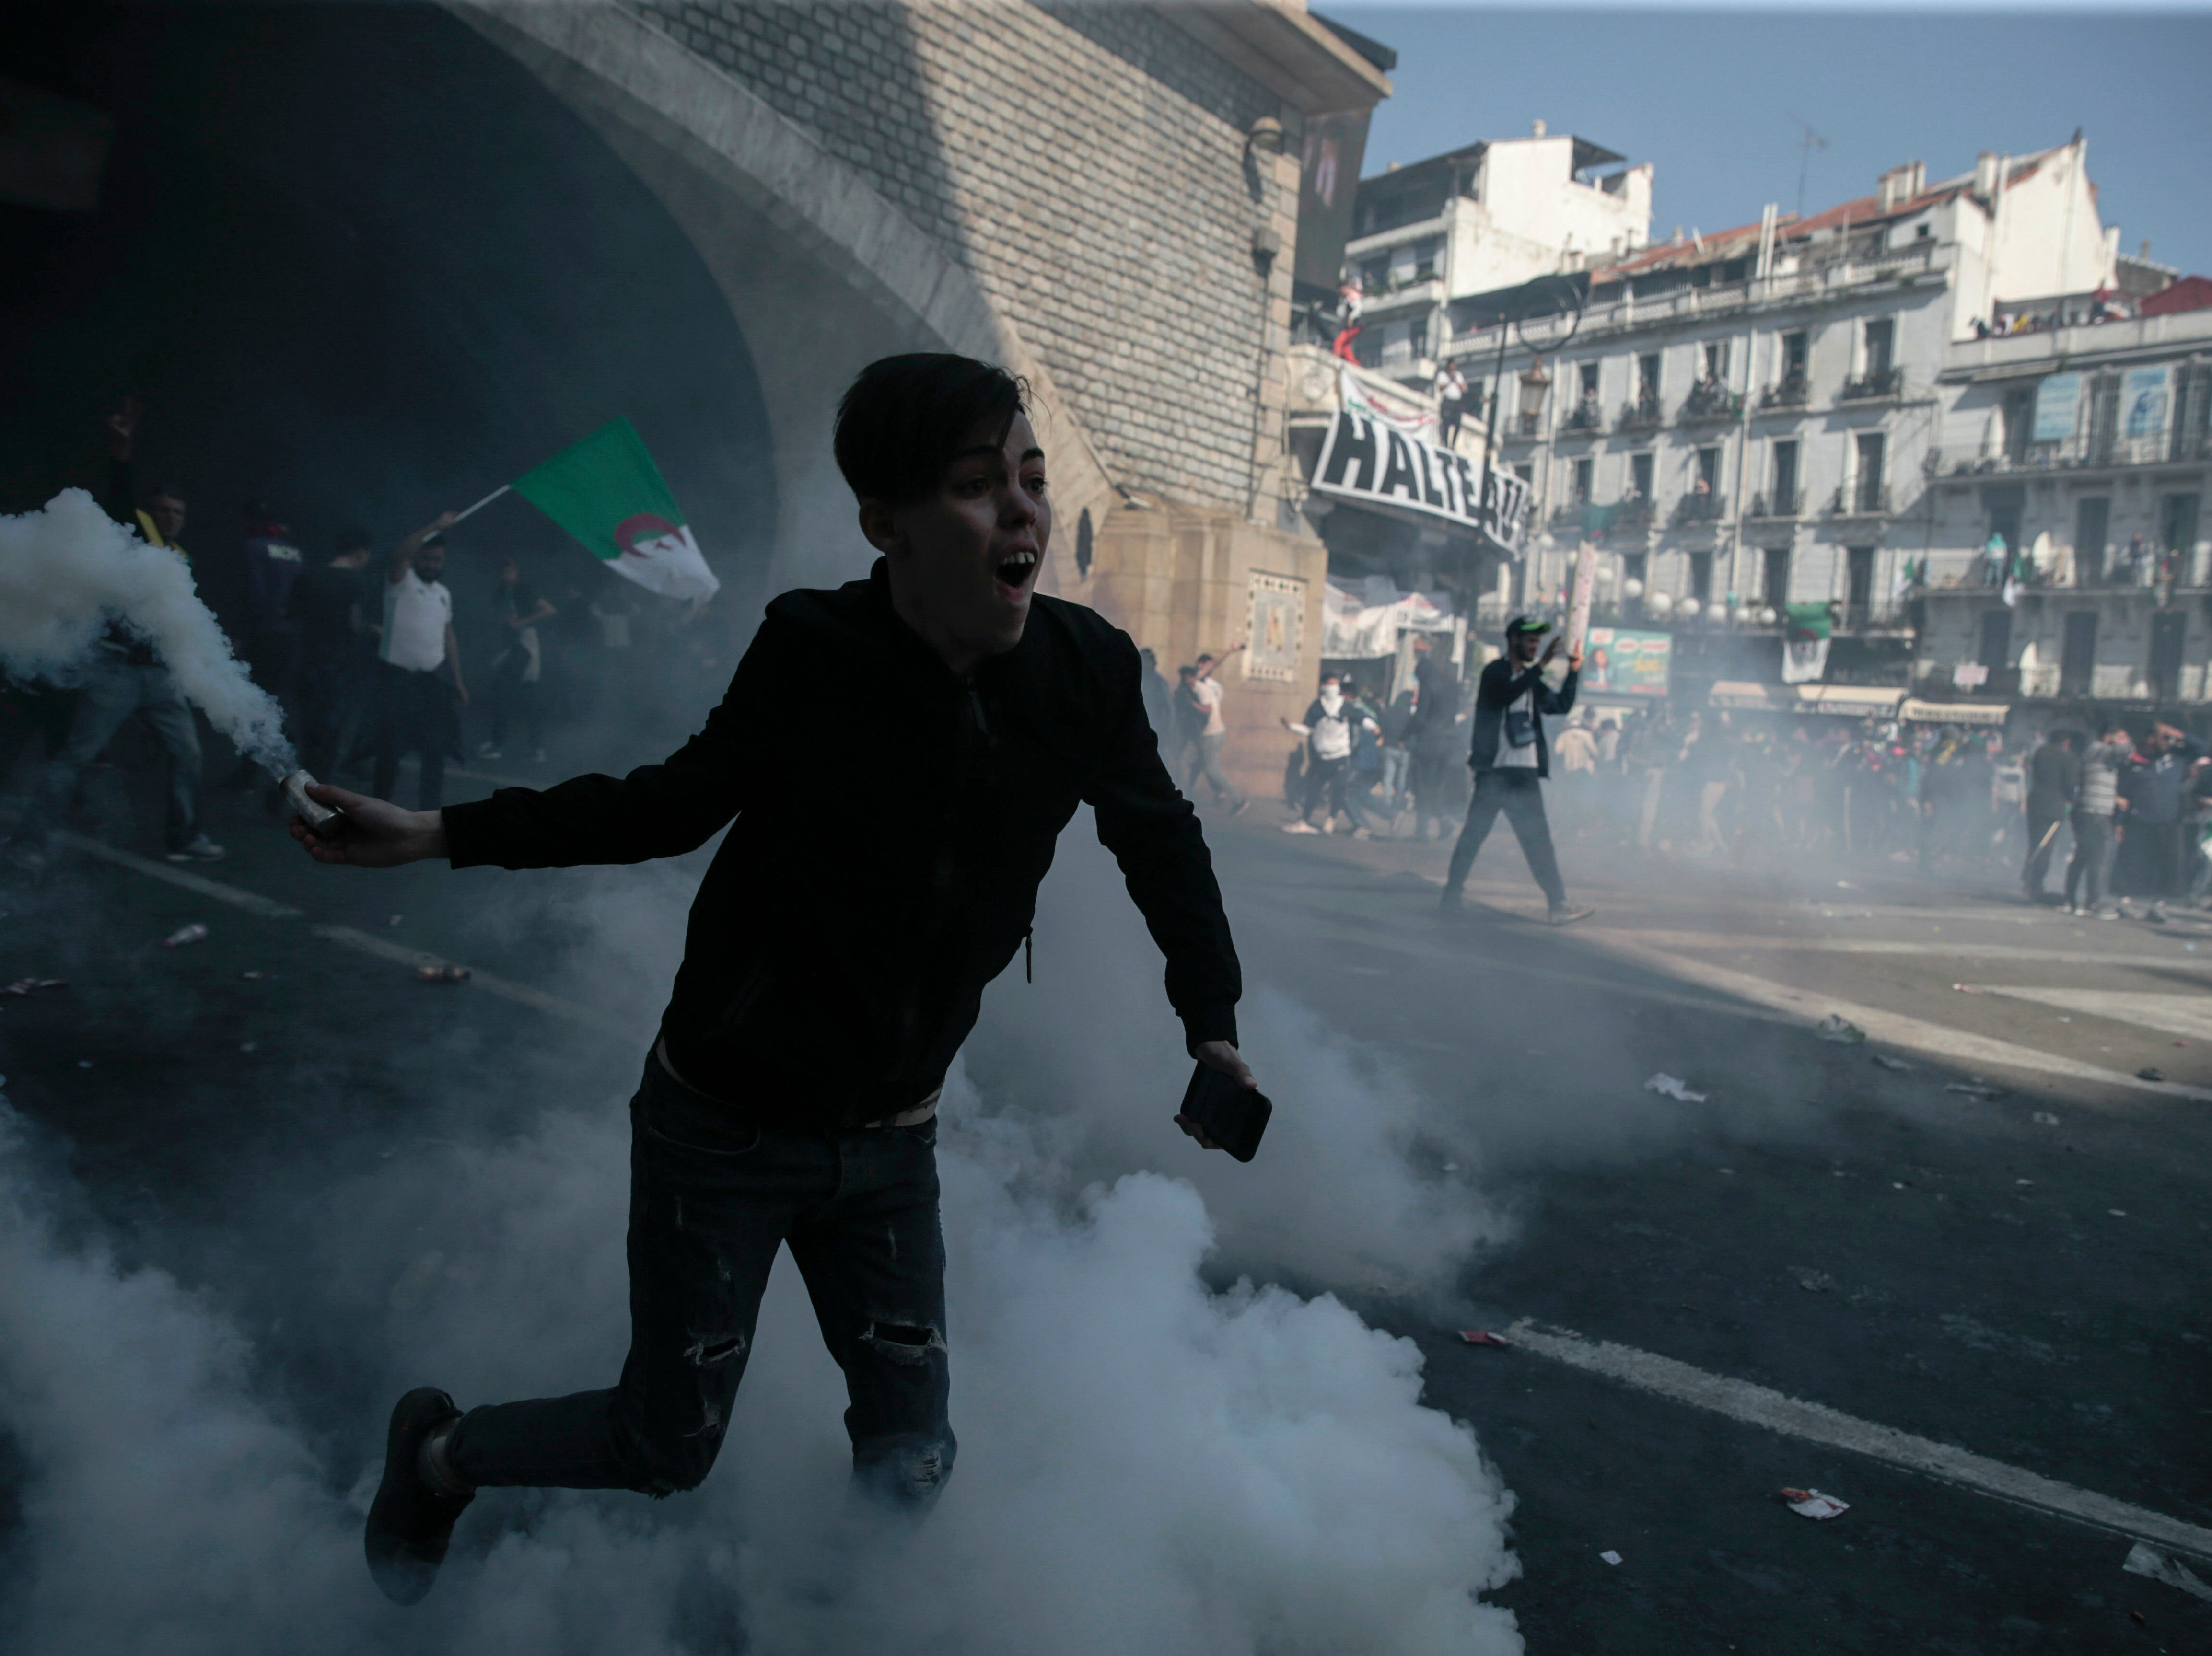 Protesters clash with police officers during a demonstration against the country's leadership, in Algiers, Friday, April 12, 2019. Heavy police deployment and repeated volleys of water cannon and tear gas didn't deter masses of Algerians from packing the streets of the capital Friday, insisting that their revolution isn't over just because the president stepped down.